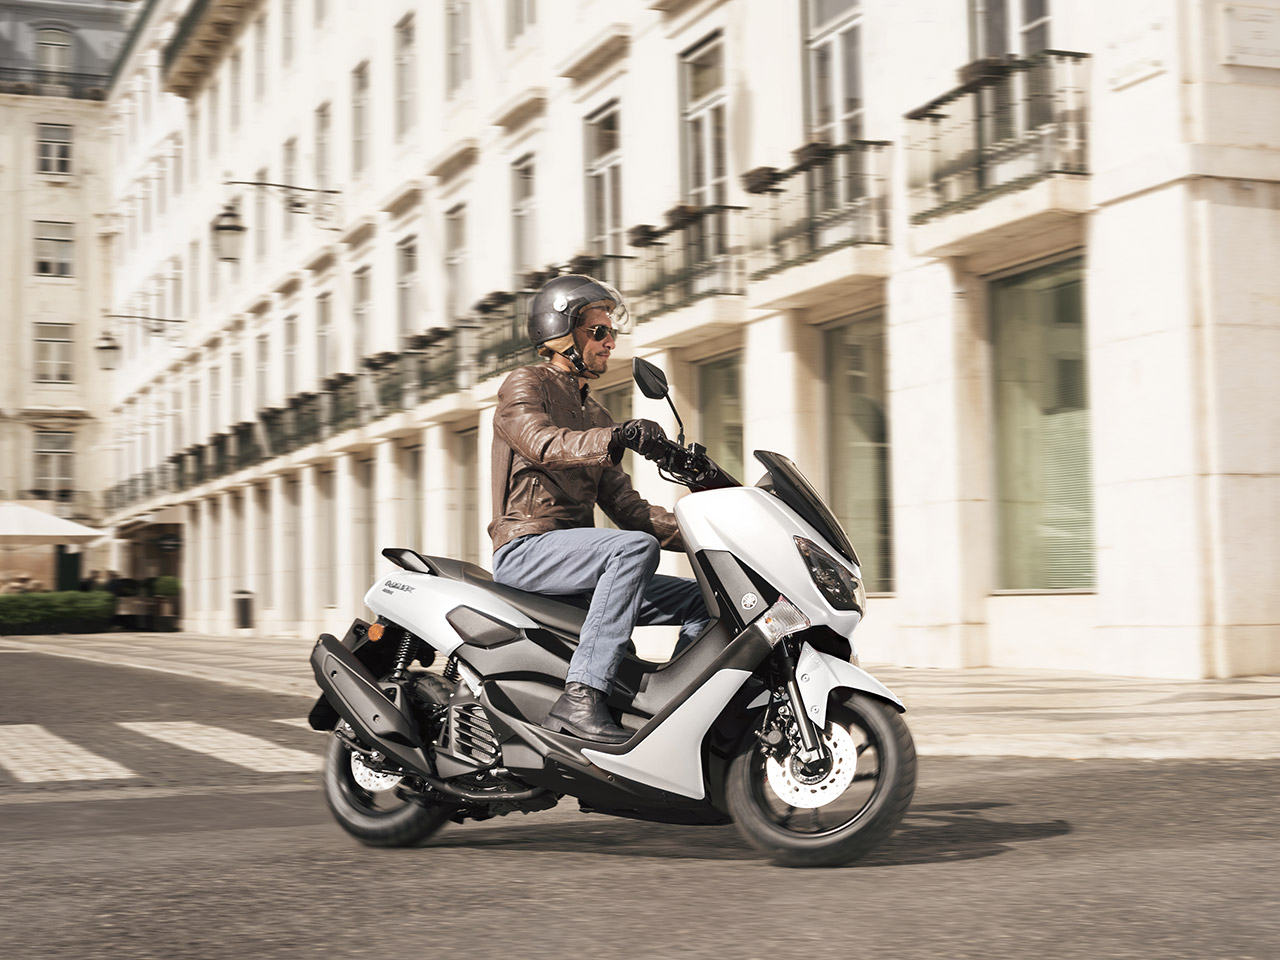 Yamaha NMAX 155 scooter in Milky white riding down city street